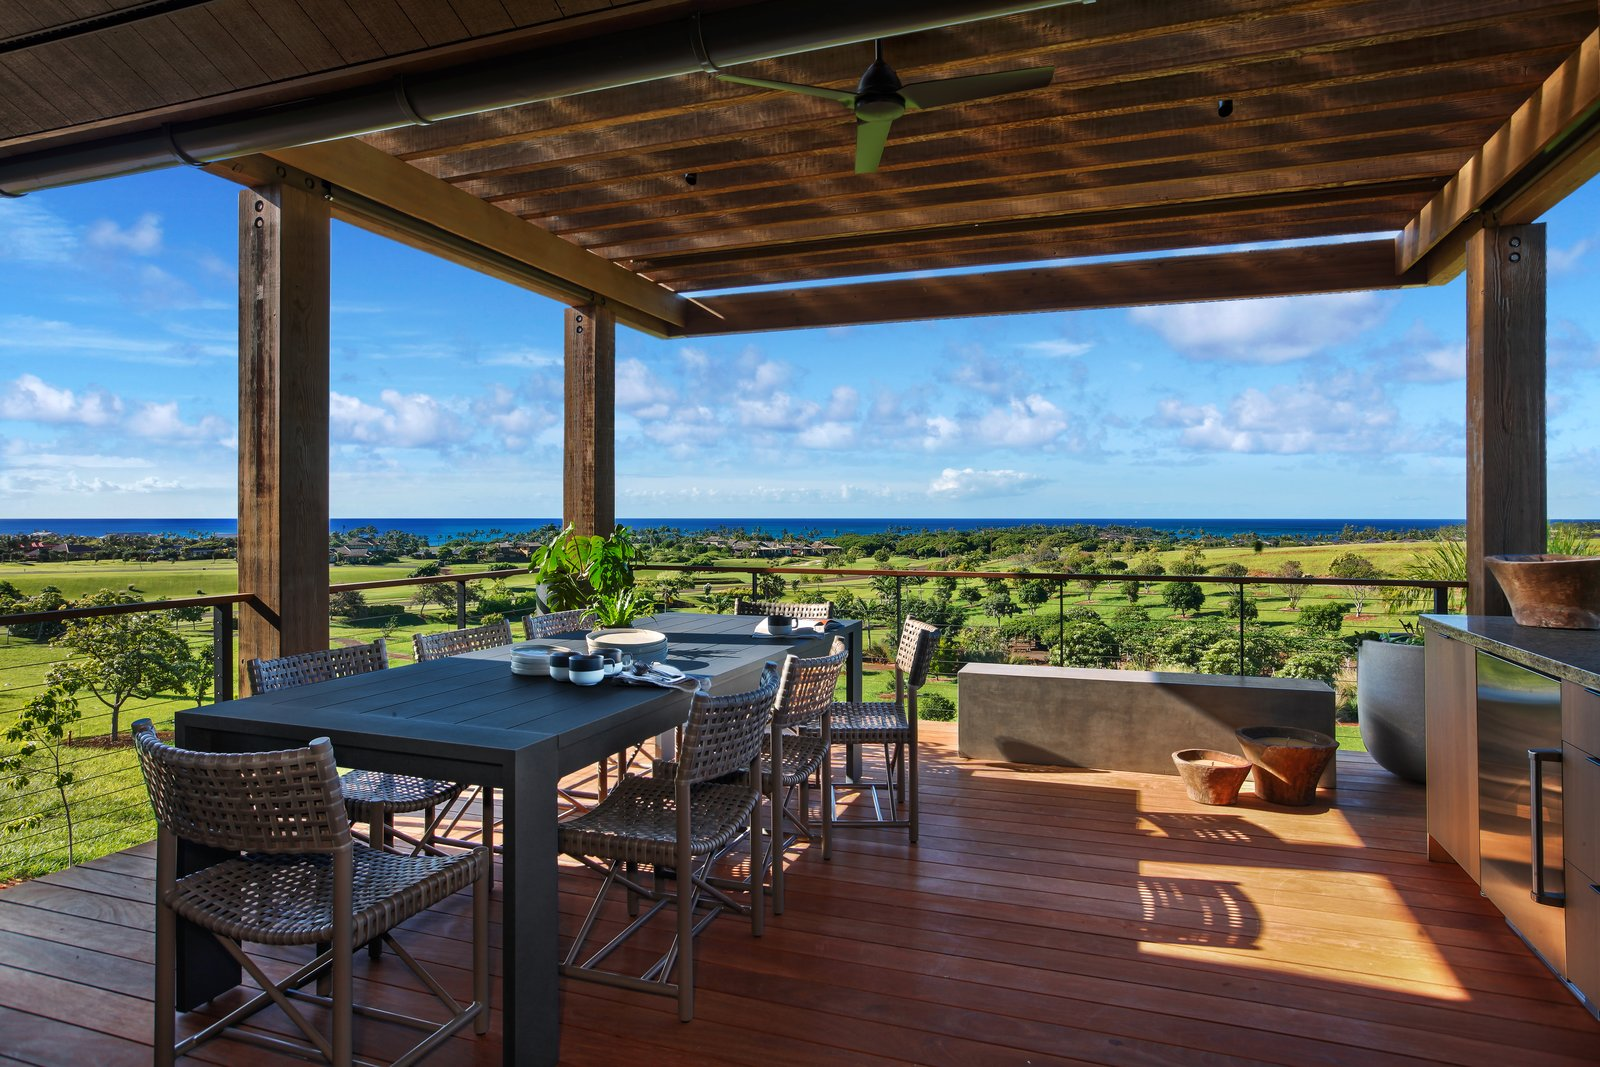 Covered dining deck with cable railing and sweeping ocean views.